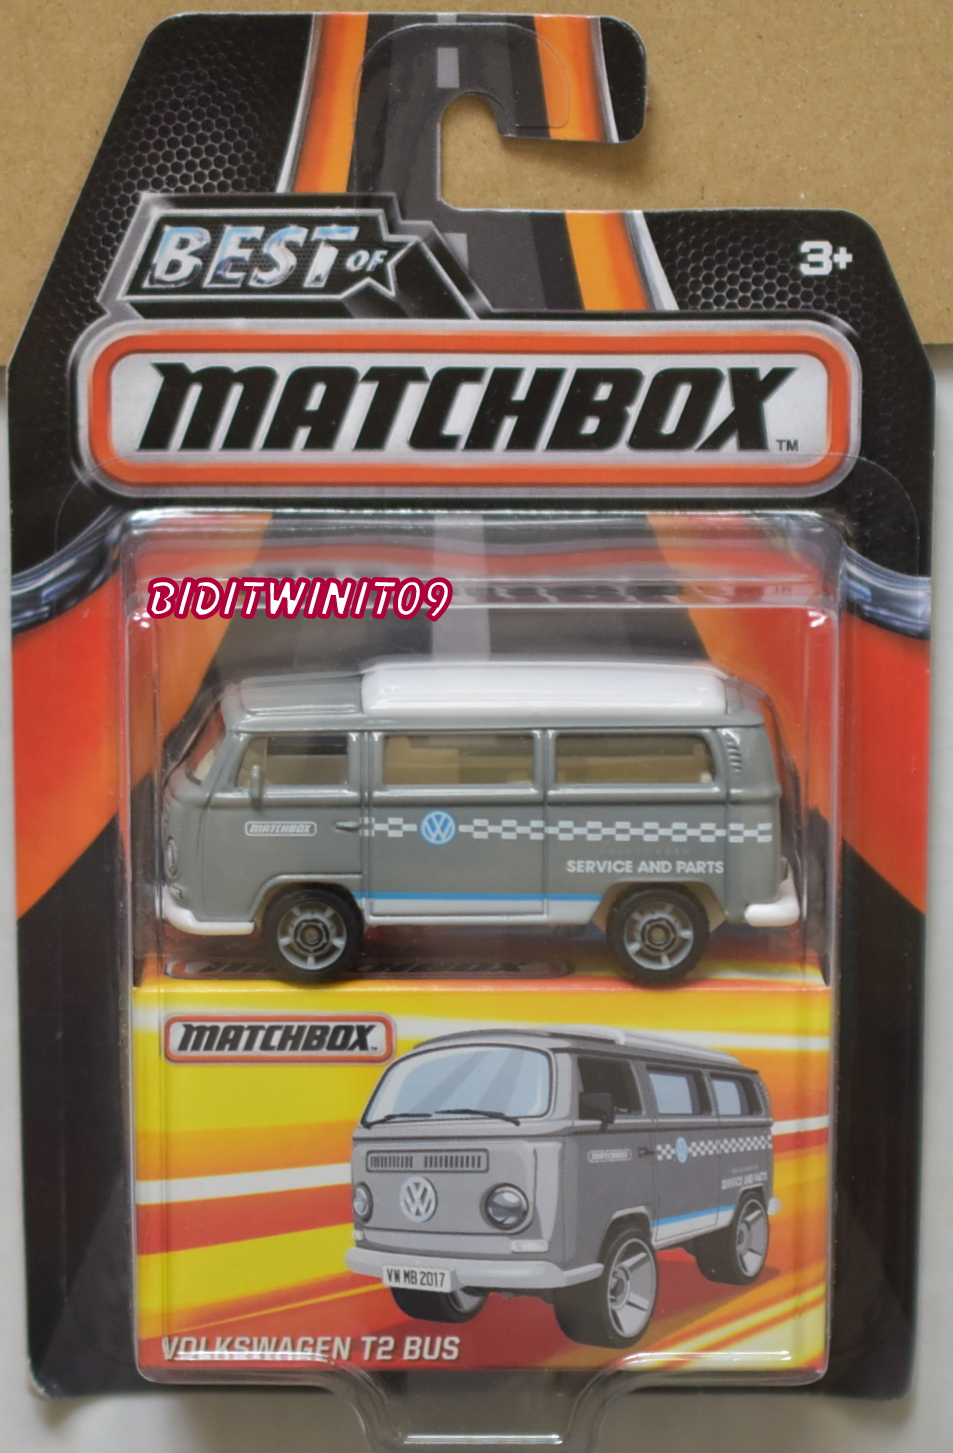 MATCHBOX 2016 BEST OF MATCHBOX VOLKSWAGEN T2 BUS E+